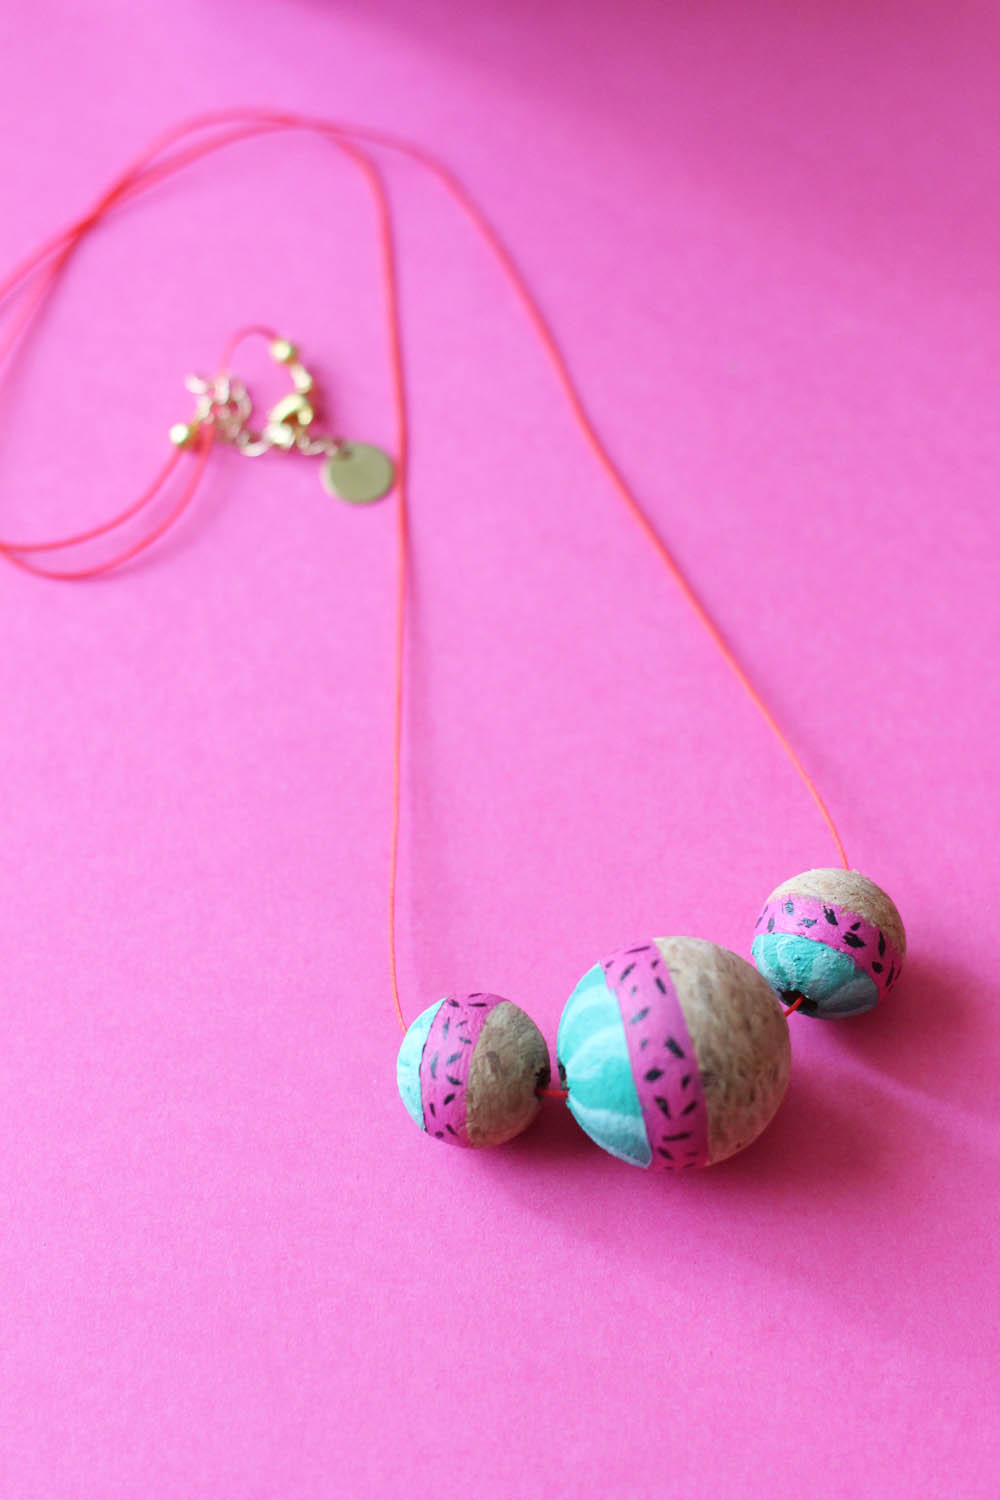 diy-collier-pasteque-été-20-summer-watermelon-necklace-